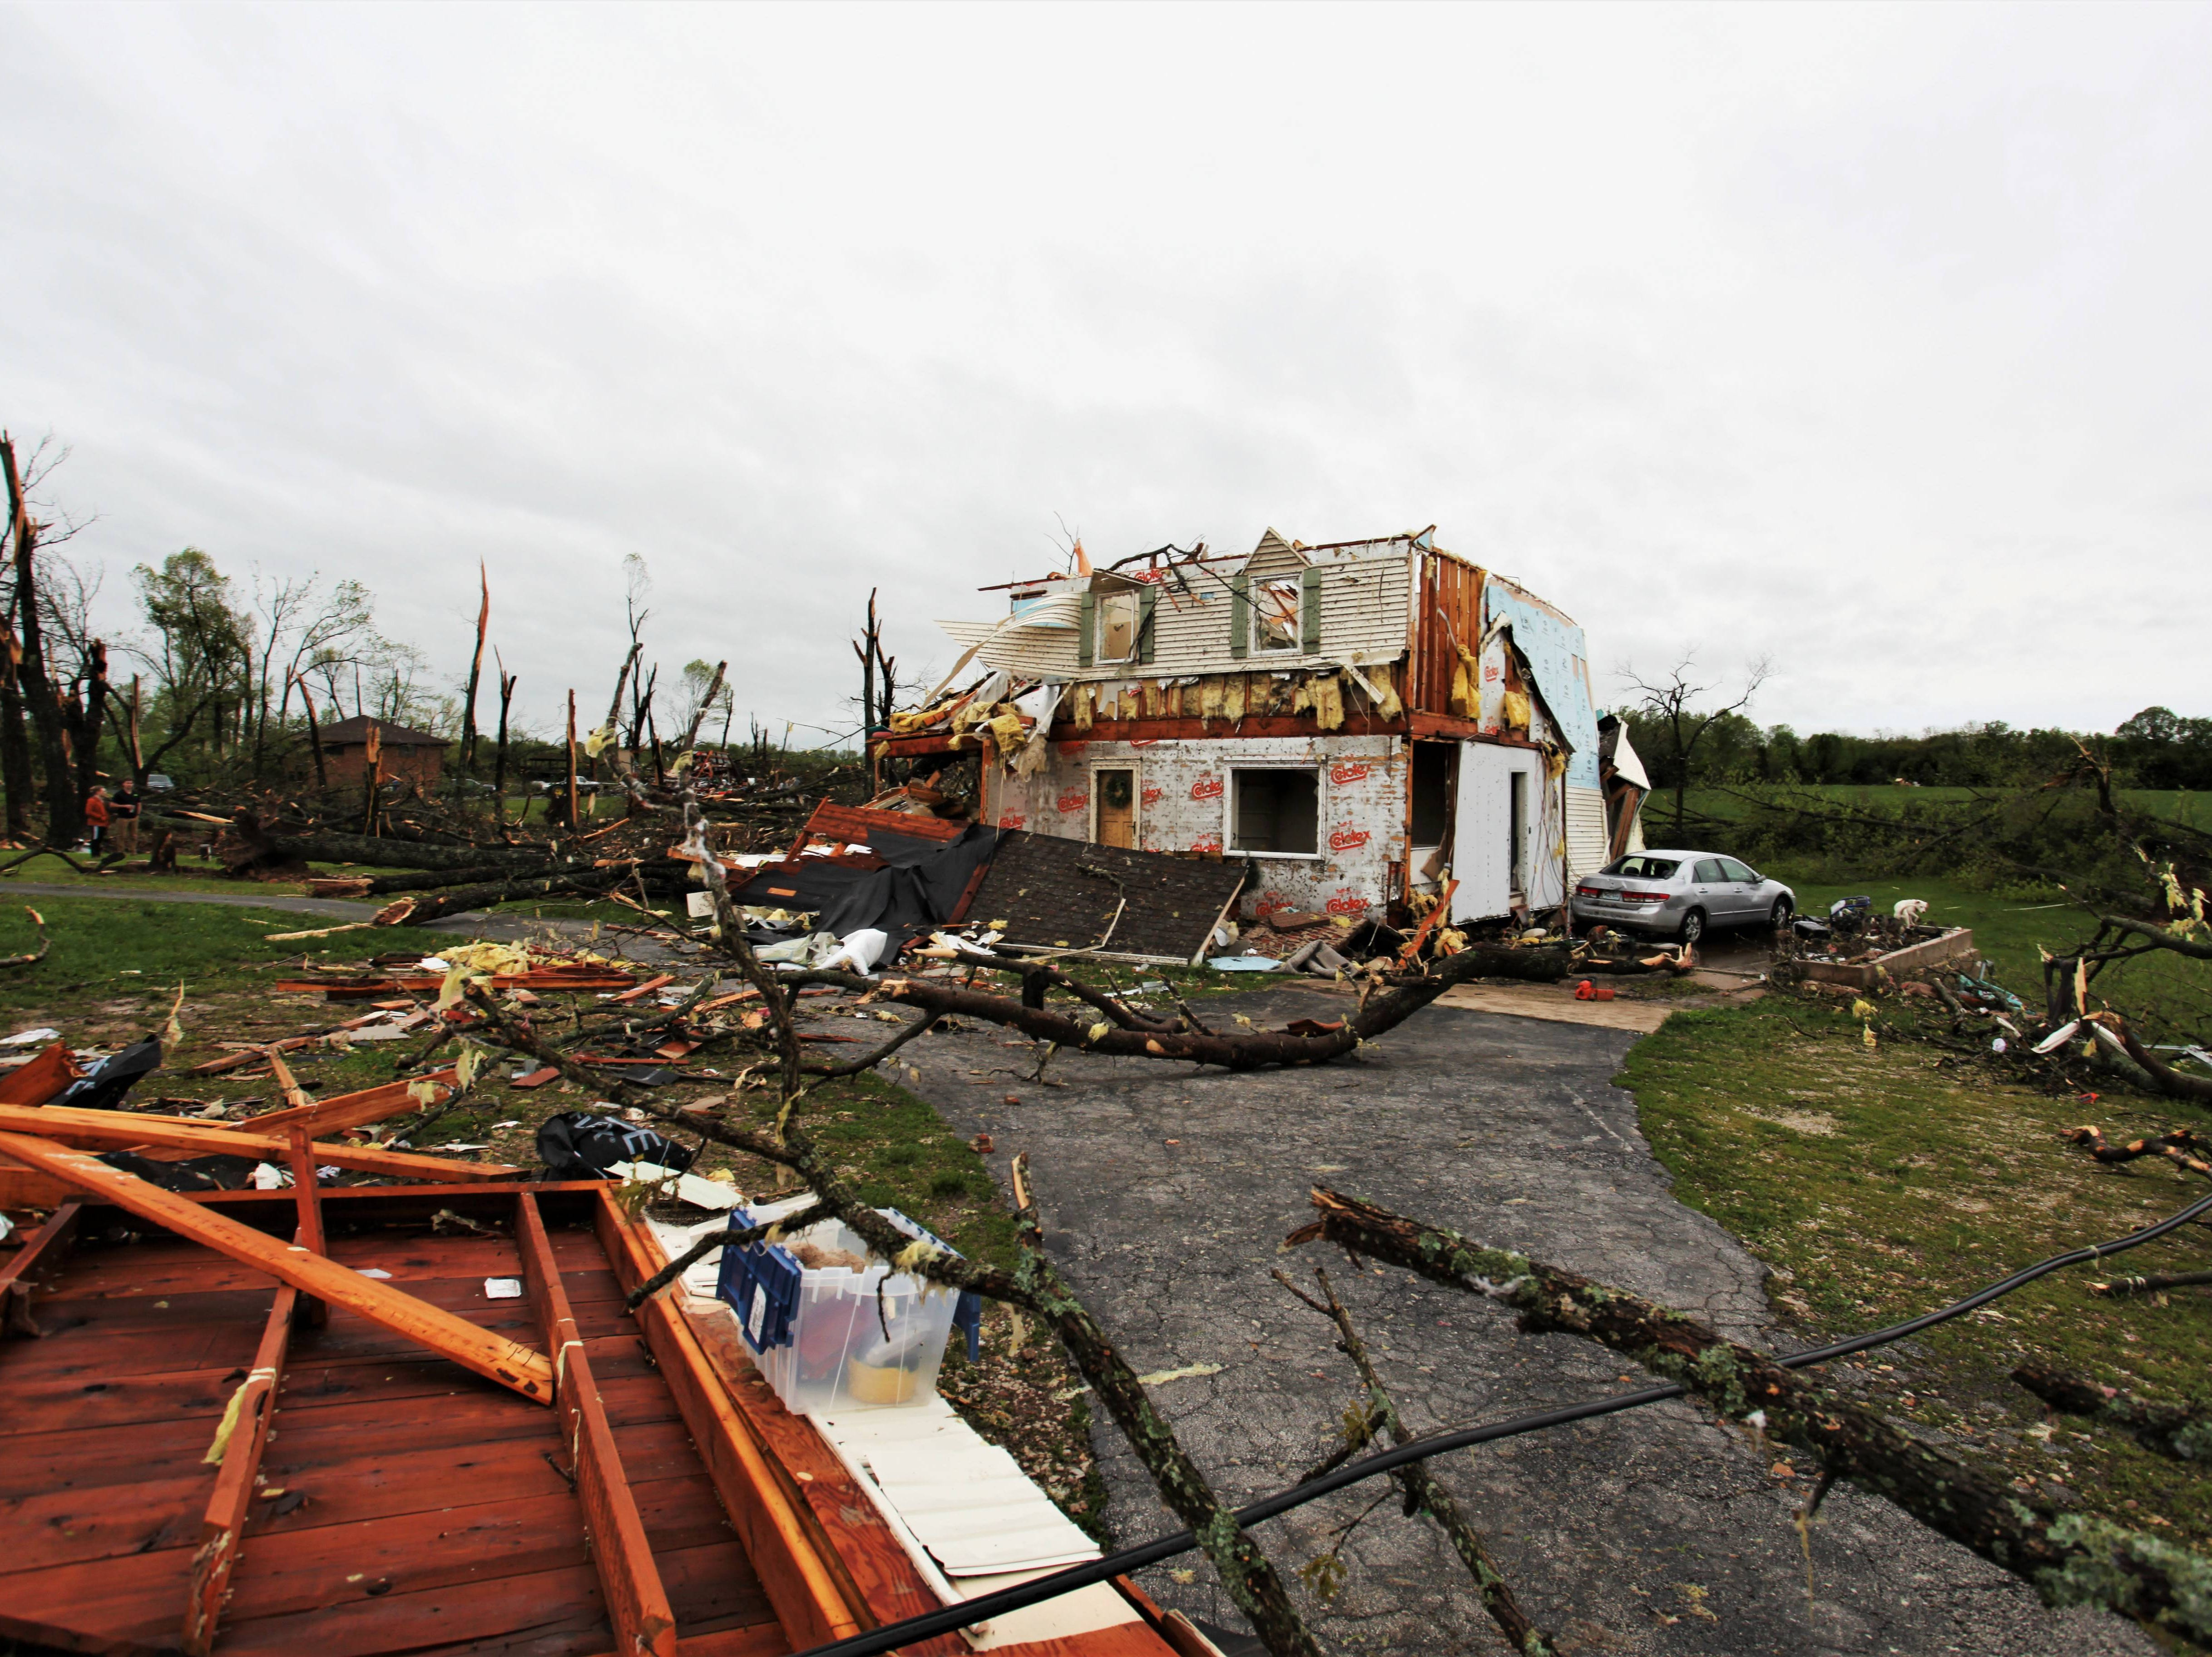 Scenes of storm damage along Farm Road 213 in Rogersville Wednesday, May 1, 2019.